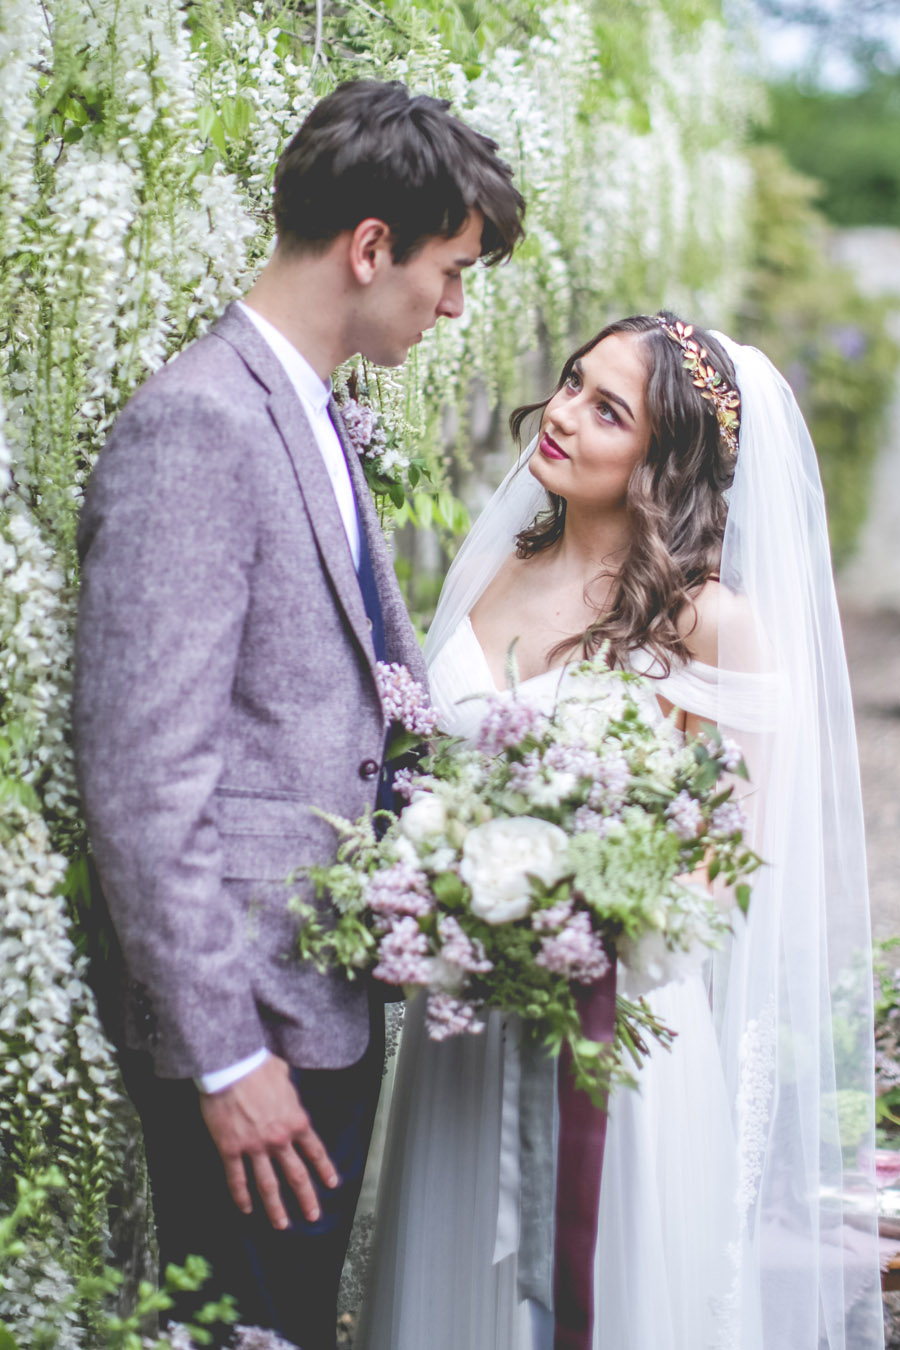 Eshott Hall wedding inspiration, credit Sean Elliott Photography (12)